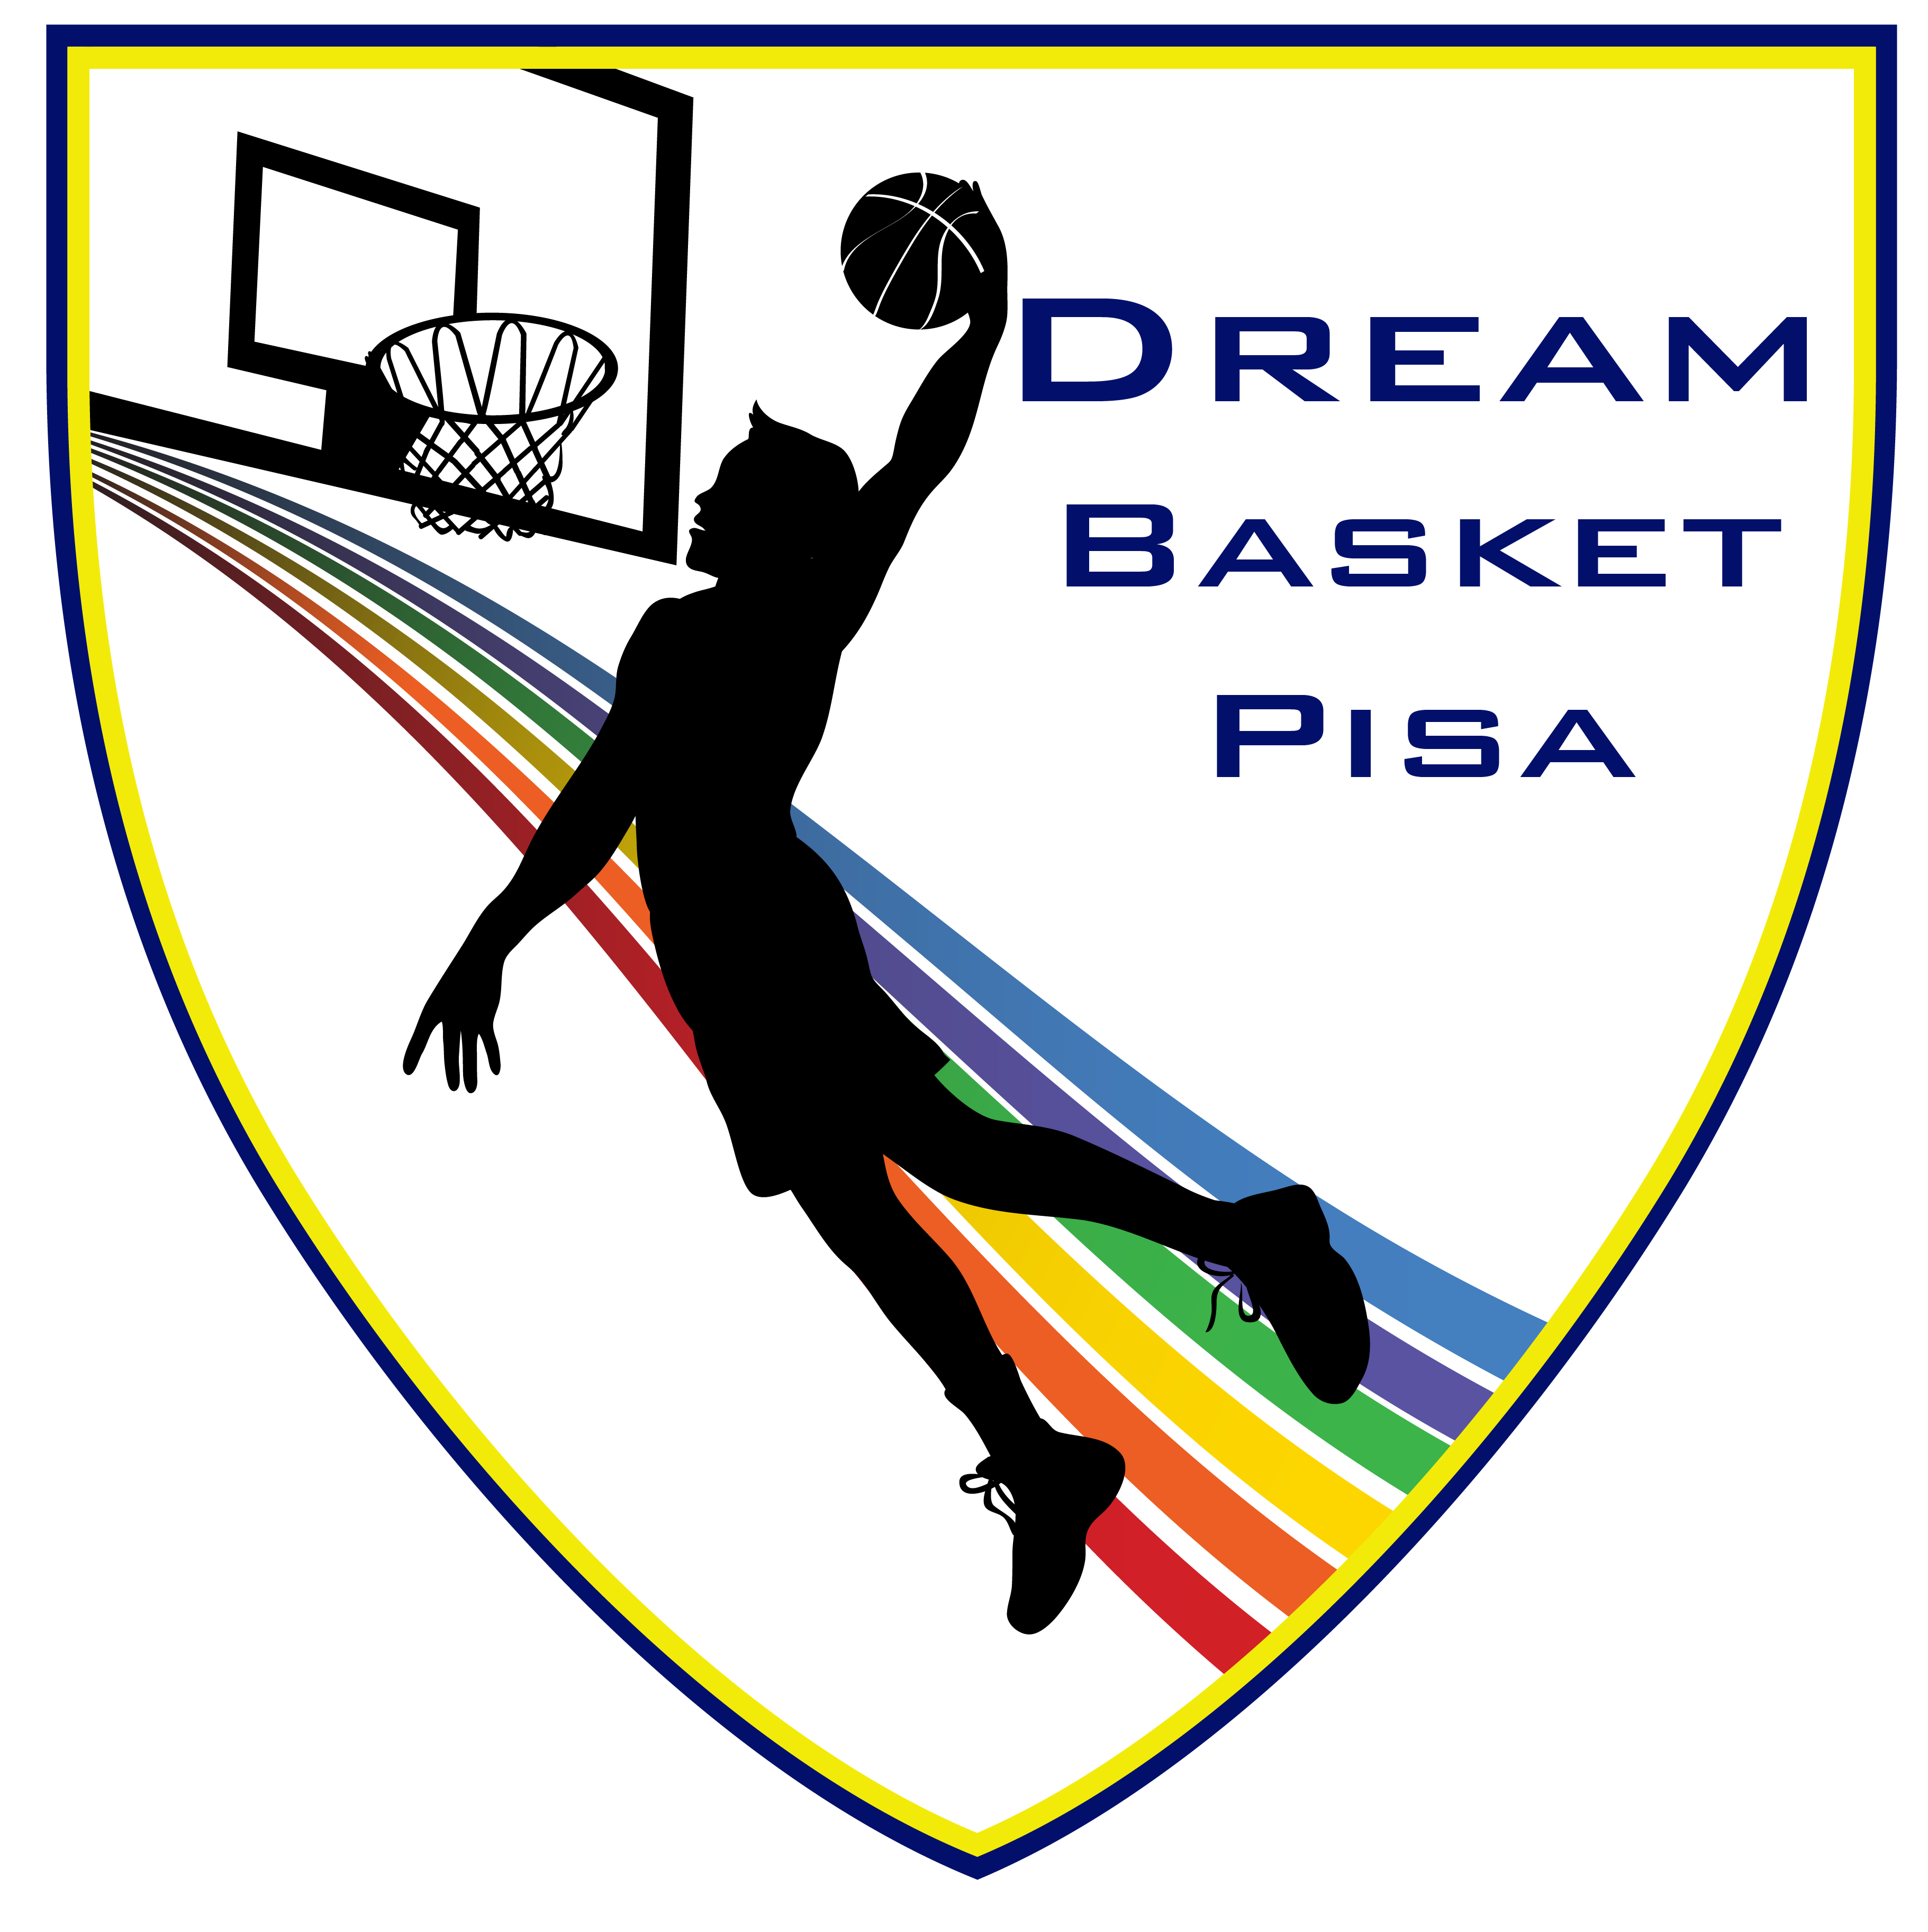 Dream Basket Pisa